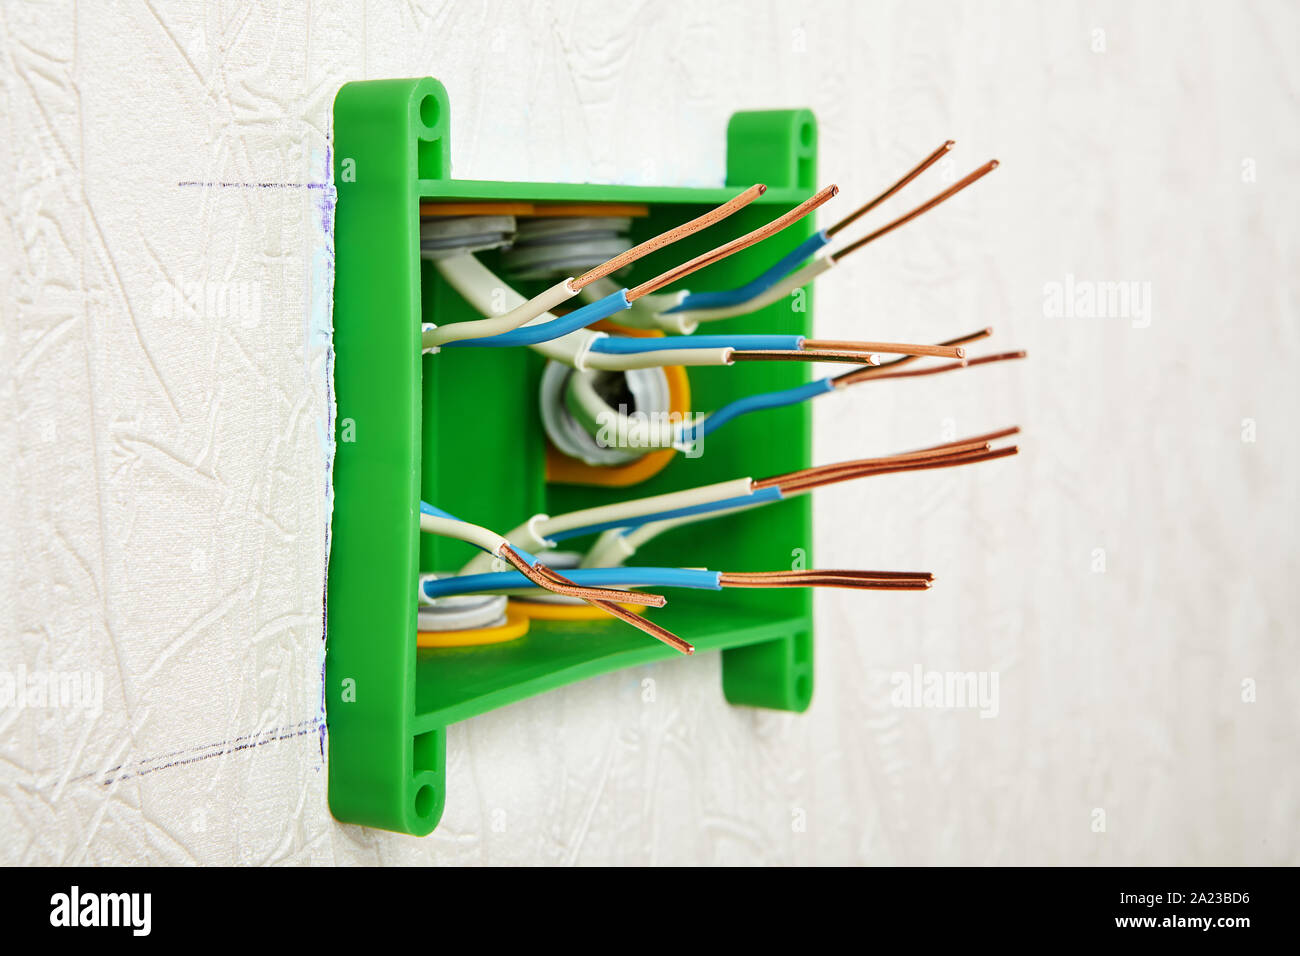 Wall Mounted Installation Of A Rectangular Plastic Electrical Junction Box For Household Wiring Insulation Was Removed From The Ends Of The Copper Wi Stock Photo Alamy